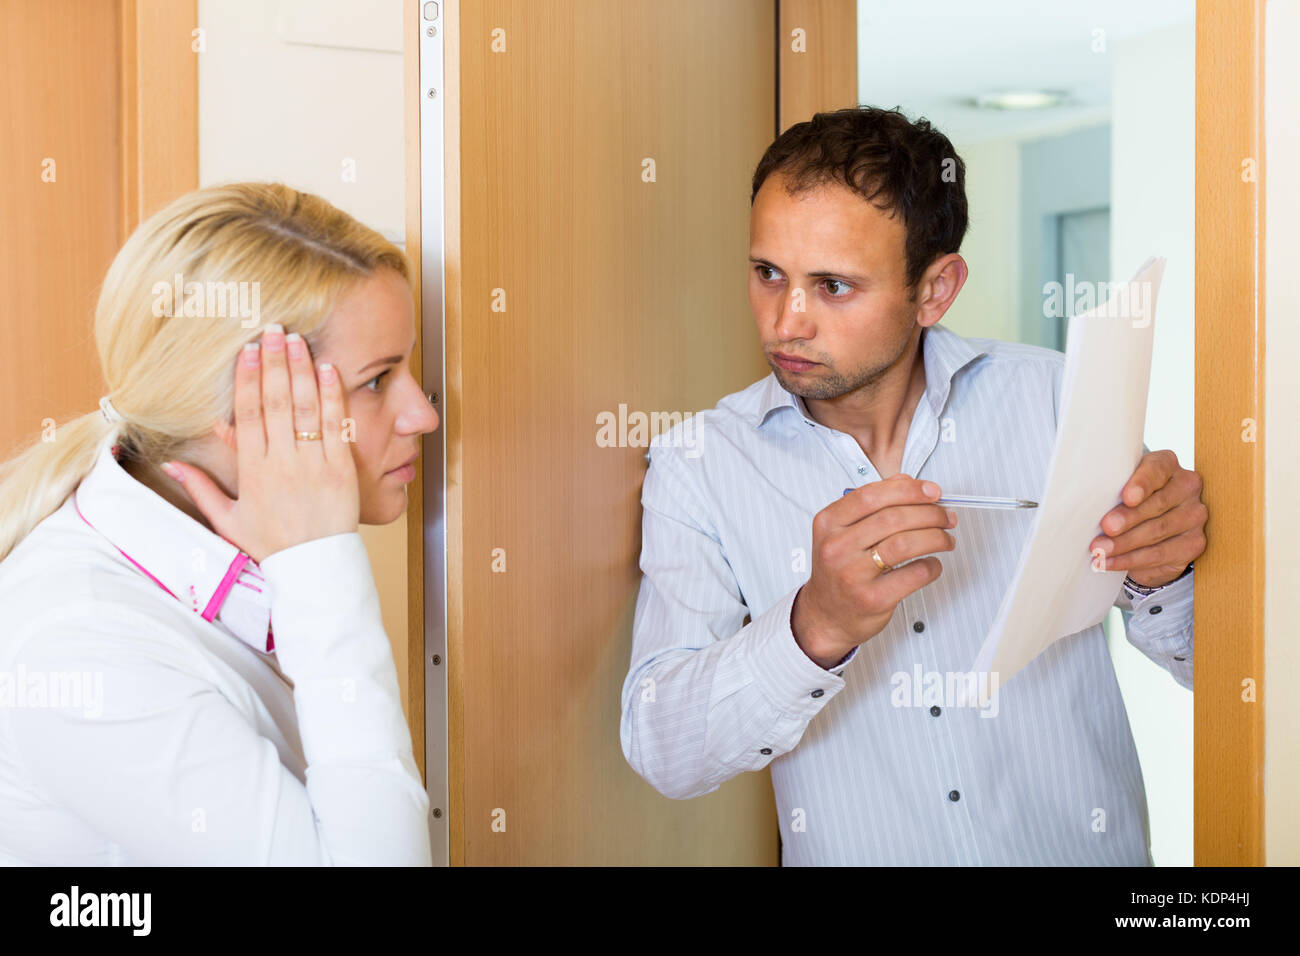 Collector is trying to get the arrears from woman at home door - Stock Image